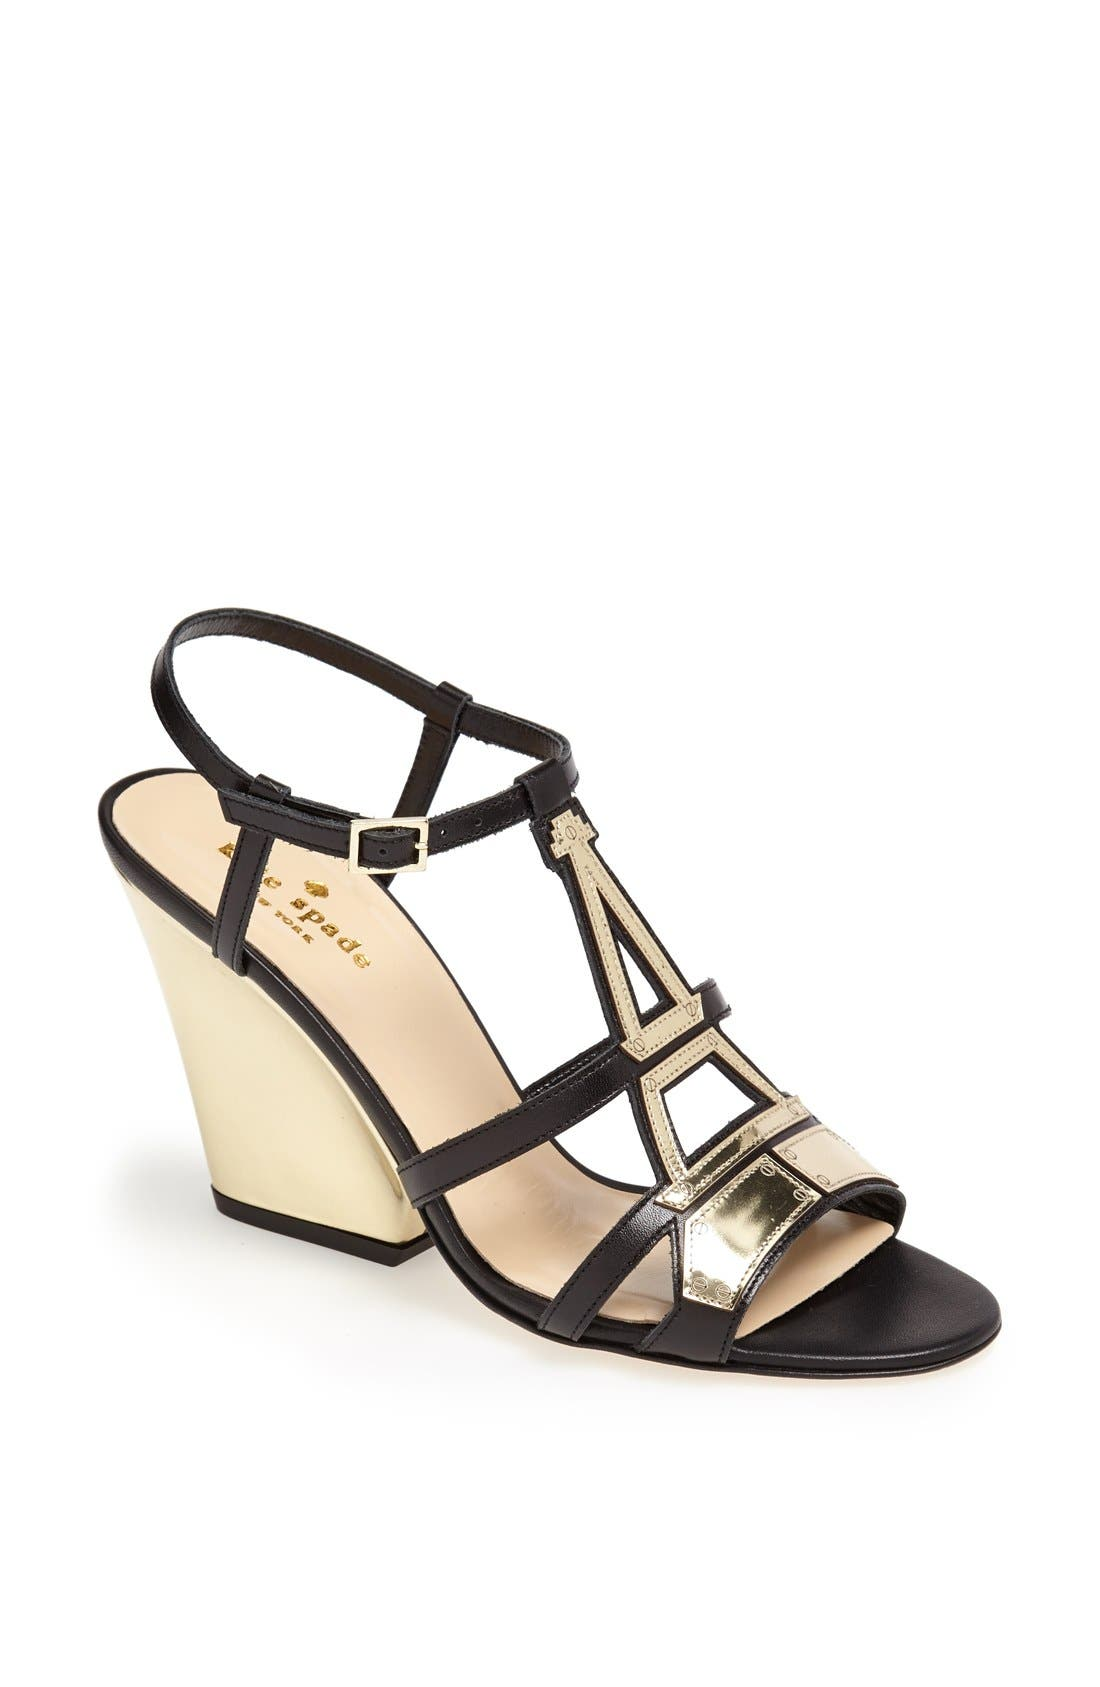 Alternate Image 1 Selected - kate spade new york 'inoltra' sandal